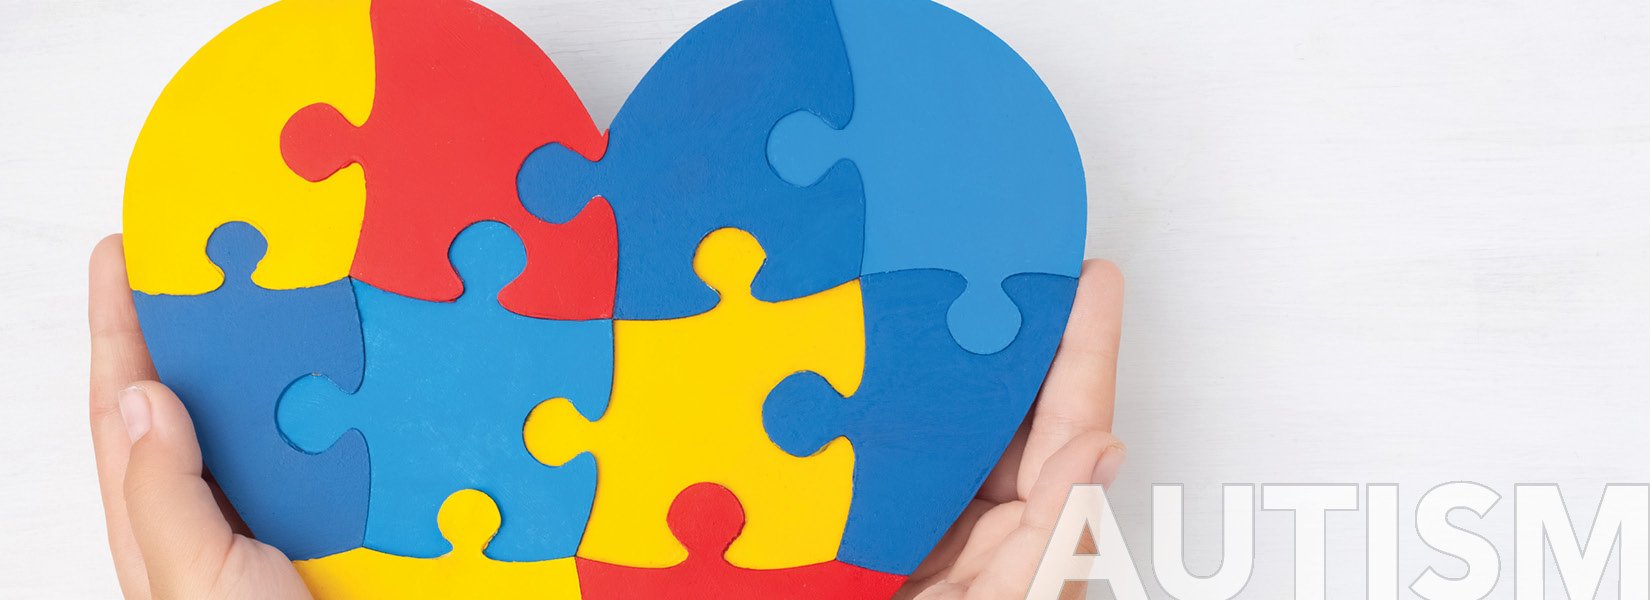 Specialty medications for Autism Fusion Specialty Pharmacy